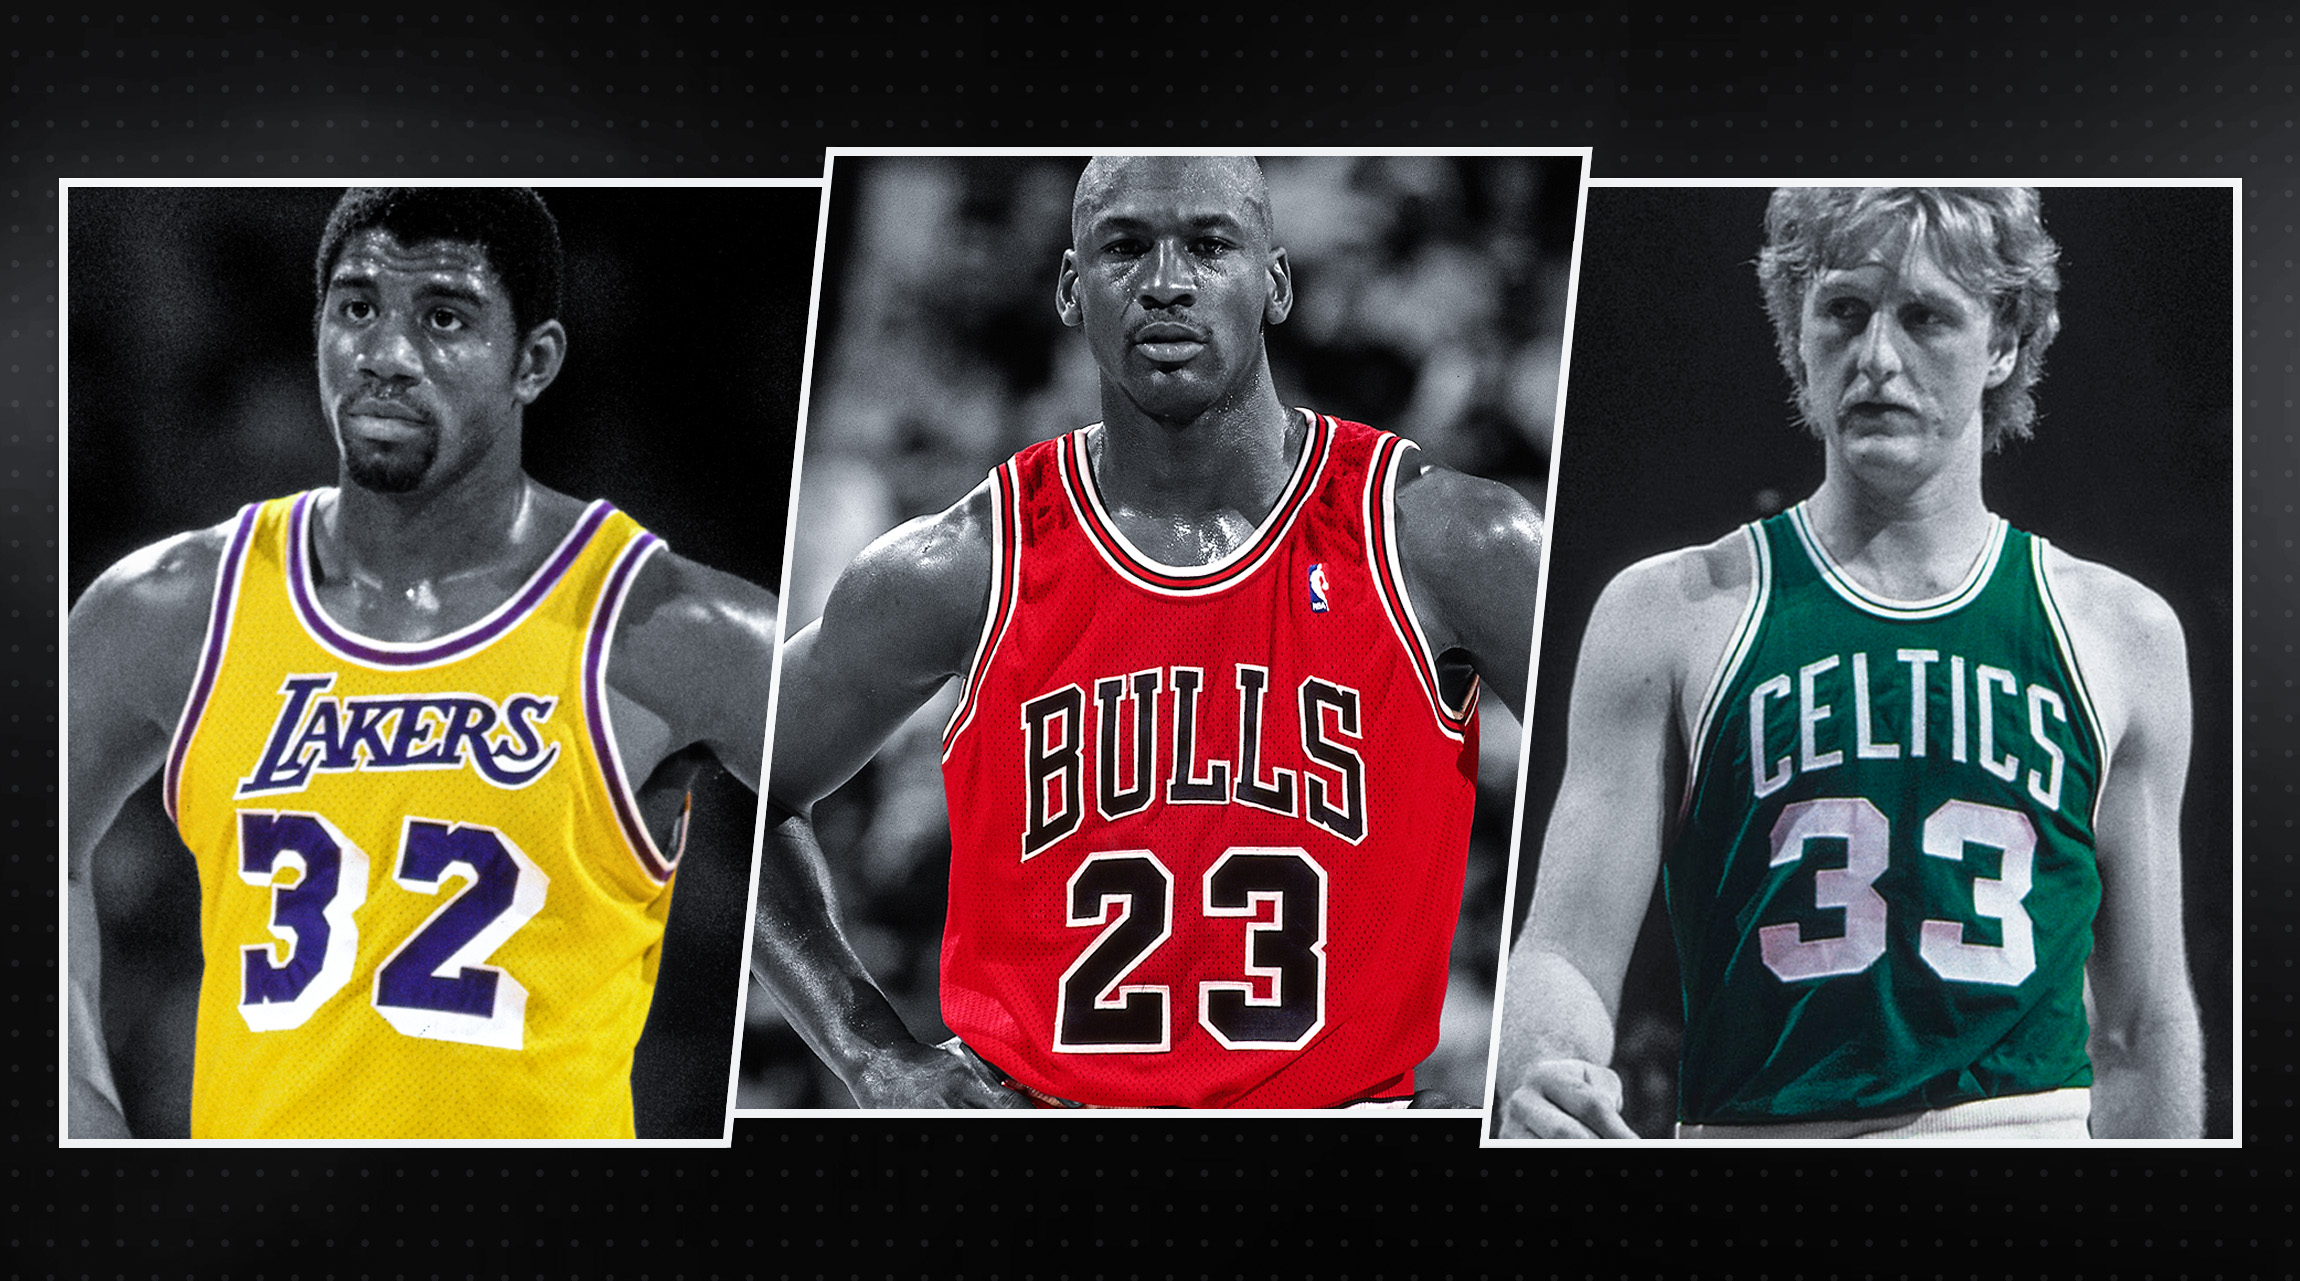 a4263d098ccb NBA jerseys  Ranking the 30 greatest in history